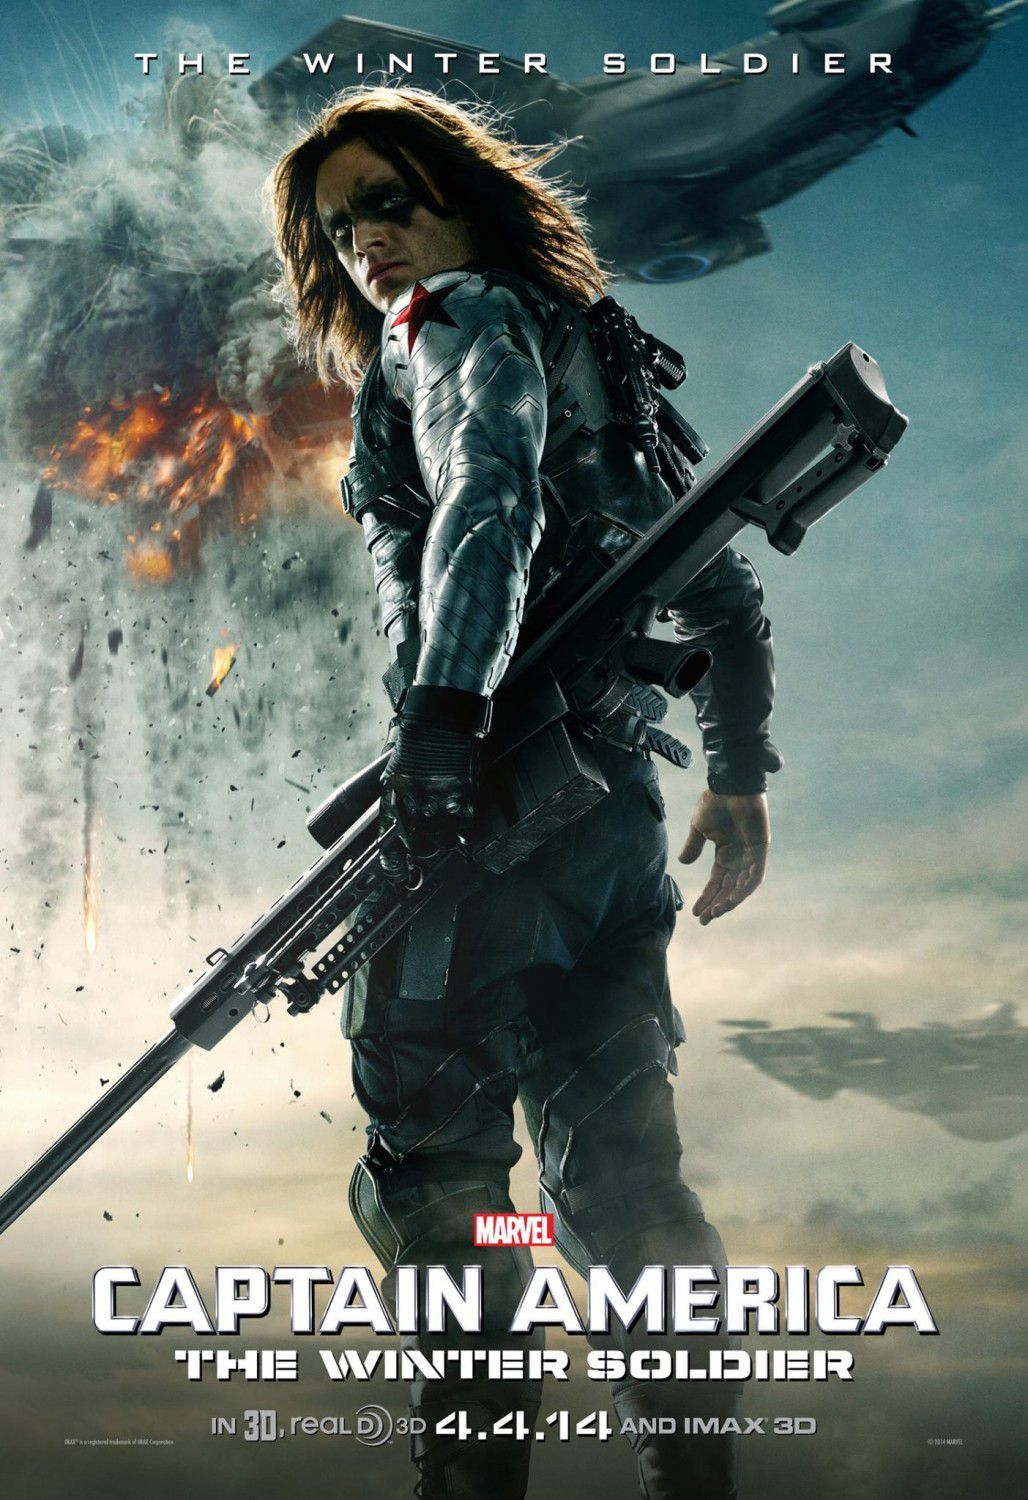 Film - Captain America 2 - the Winter Soldier (Sebastian Stan) - Capitan America